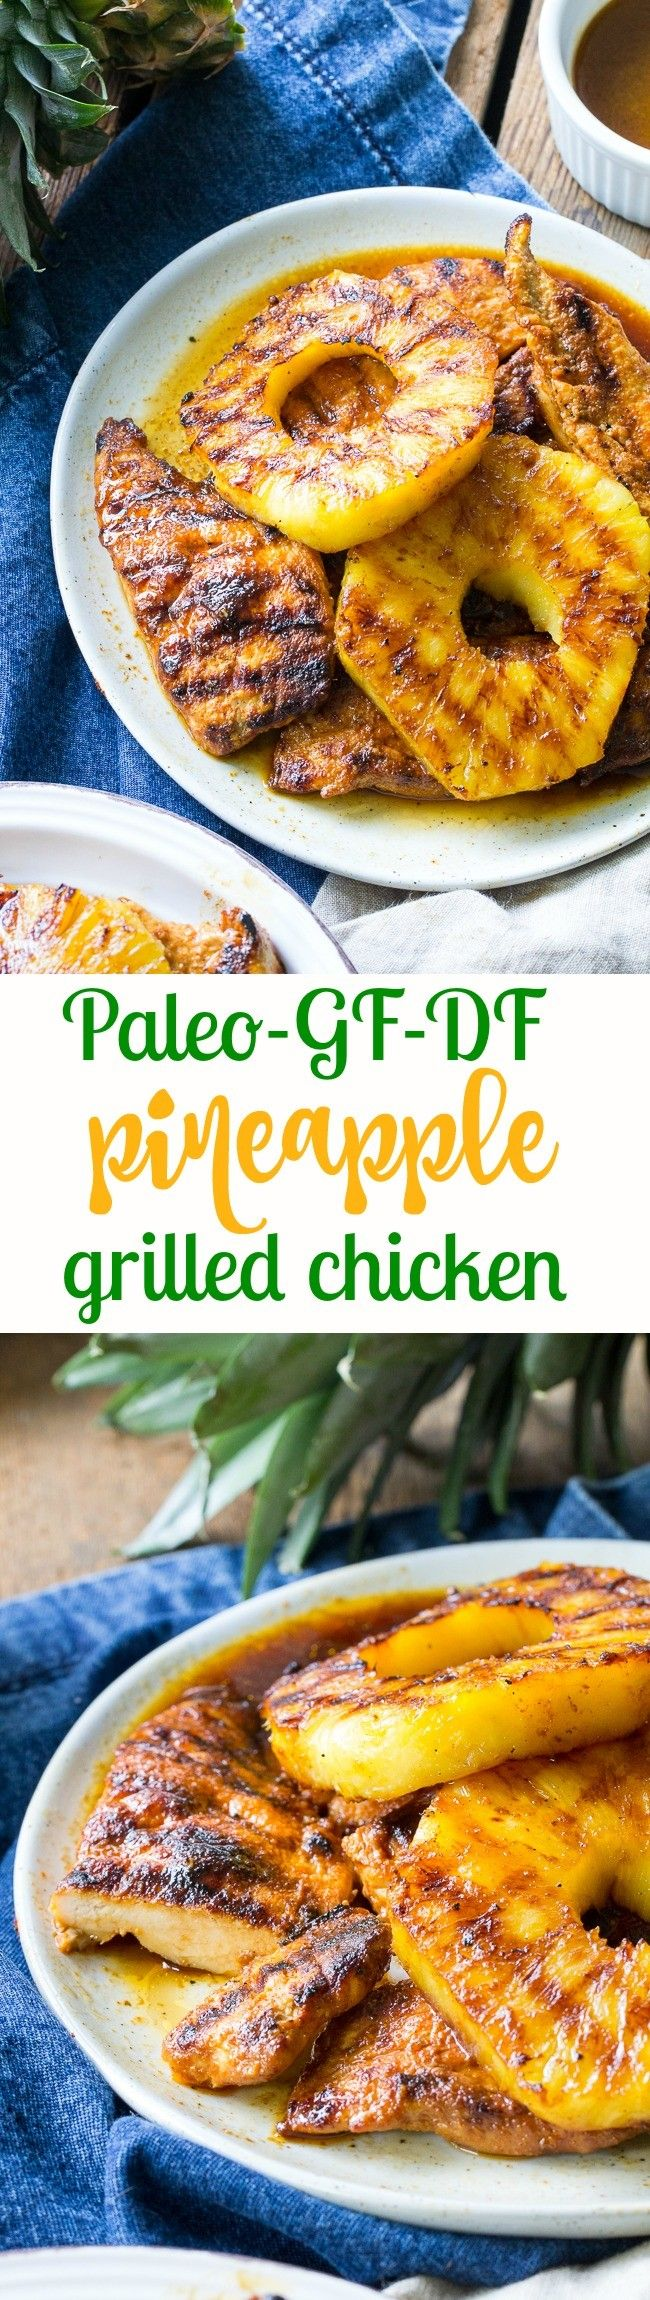 This Paleo pineapple chicken has a sweet pineapple glaze with a Whole30 friendly option too! Its easy, healthy, kid approved and perfect for summer grilling. It can also be made stovetop in a grill-pan. Refined sugar, free gluten-free and dairy-free.